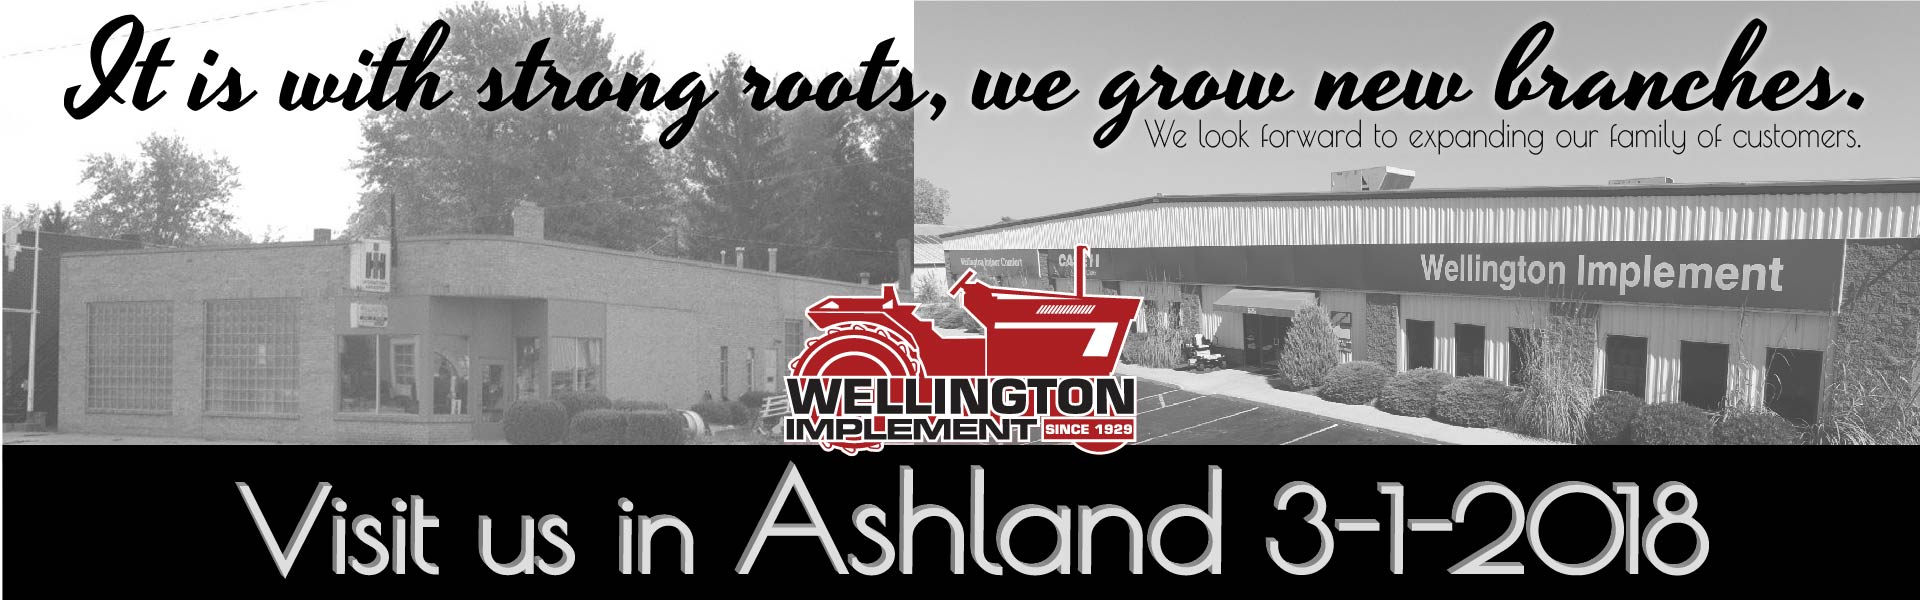 Ashland expansion